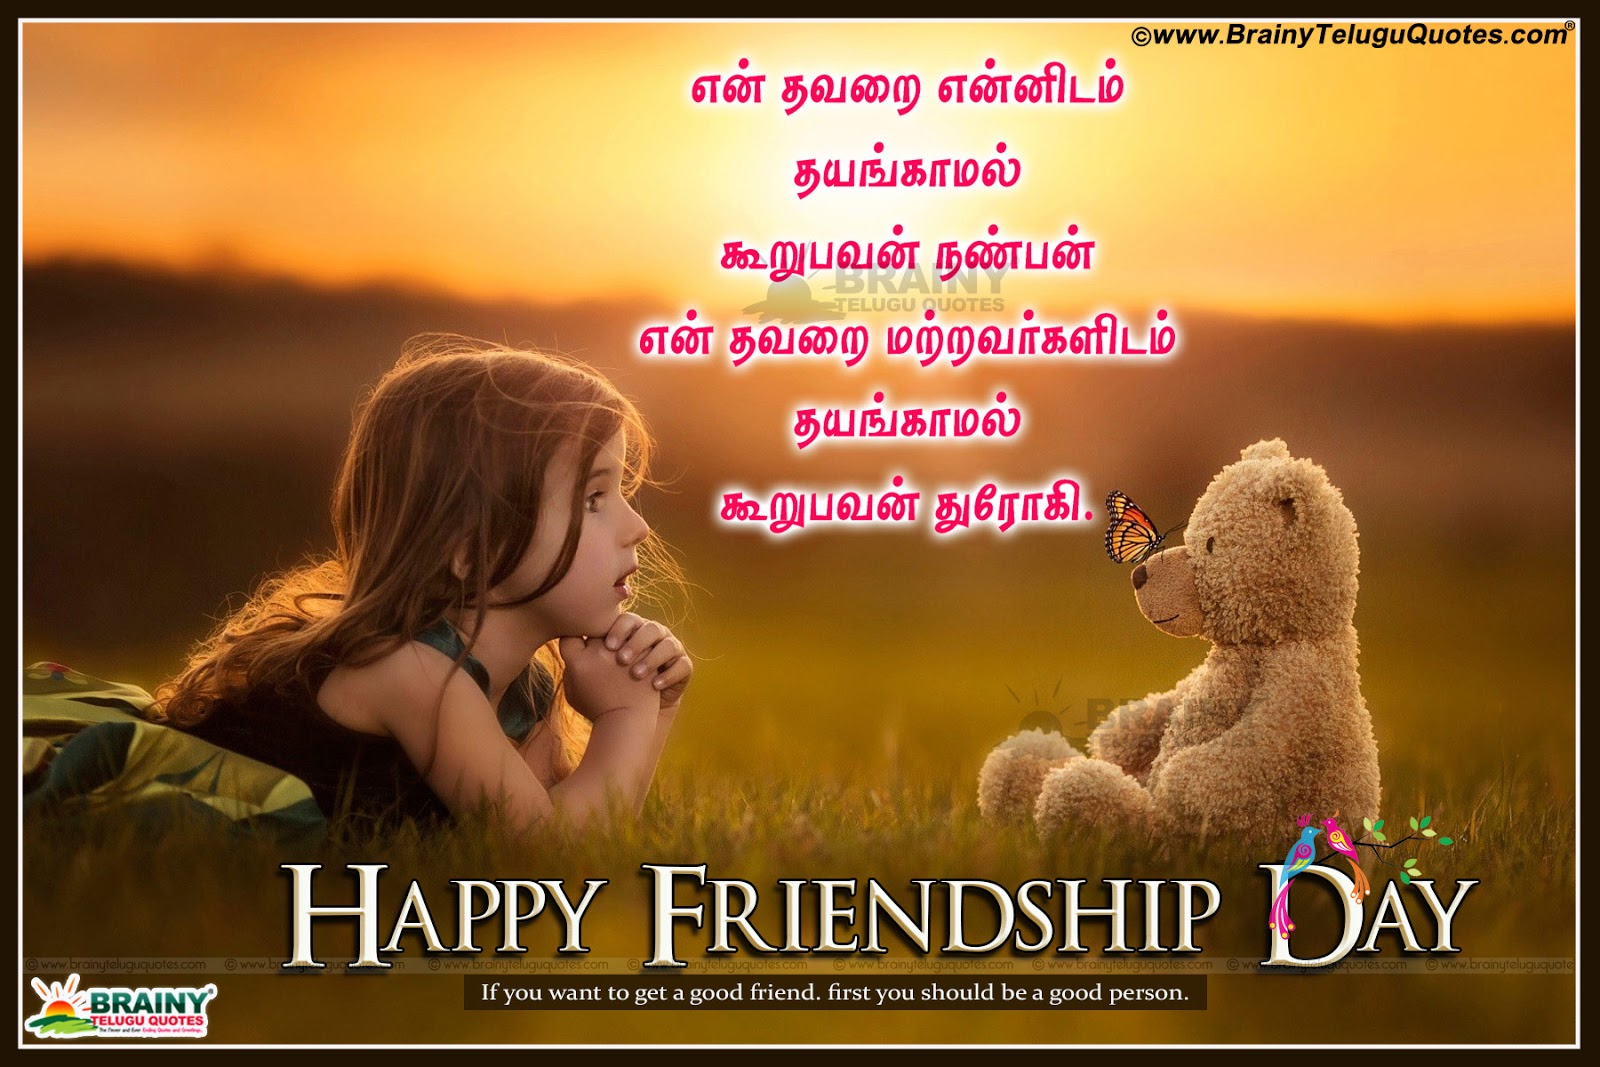 Elizabeth Taylor quot;s and Sayings in English Pictures Tamil friendship kavithai photos